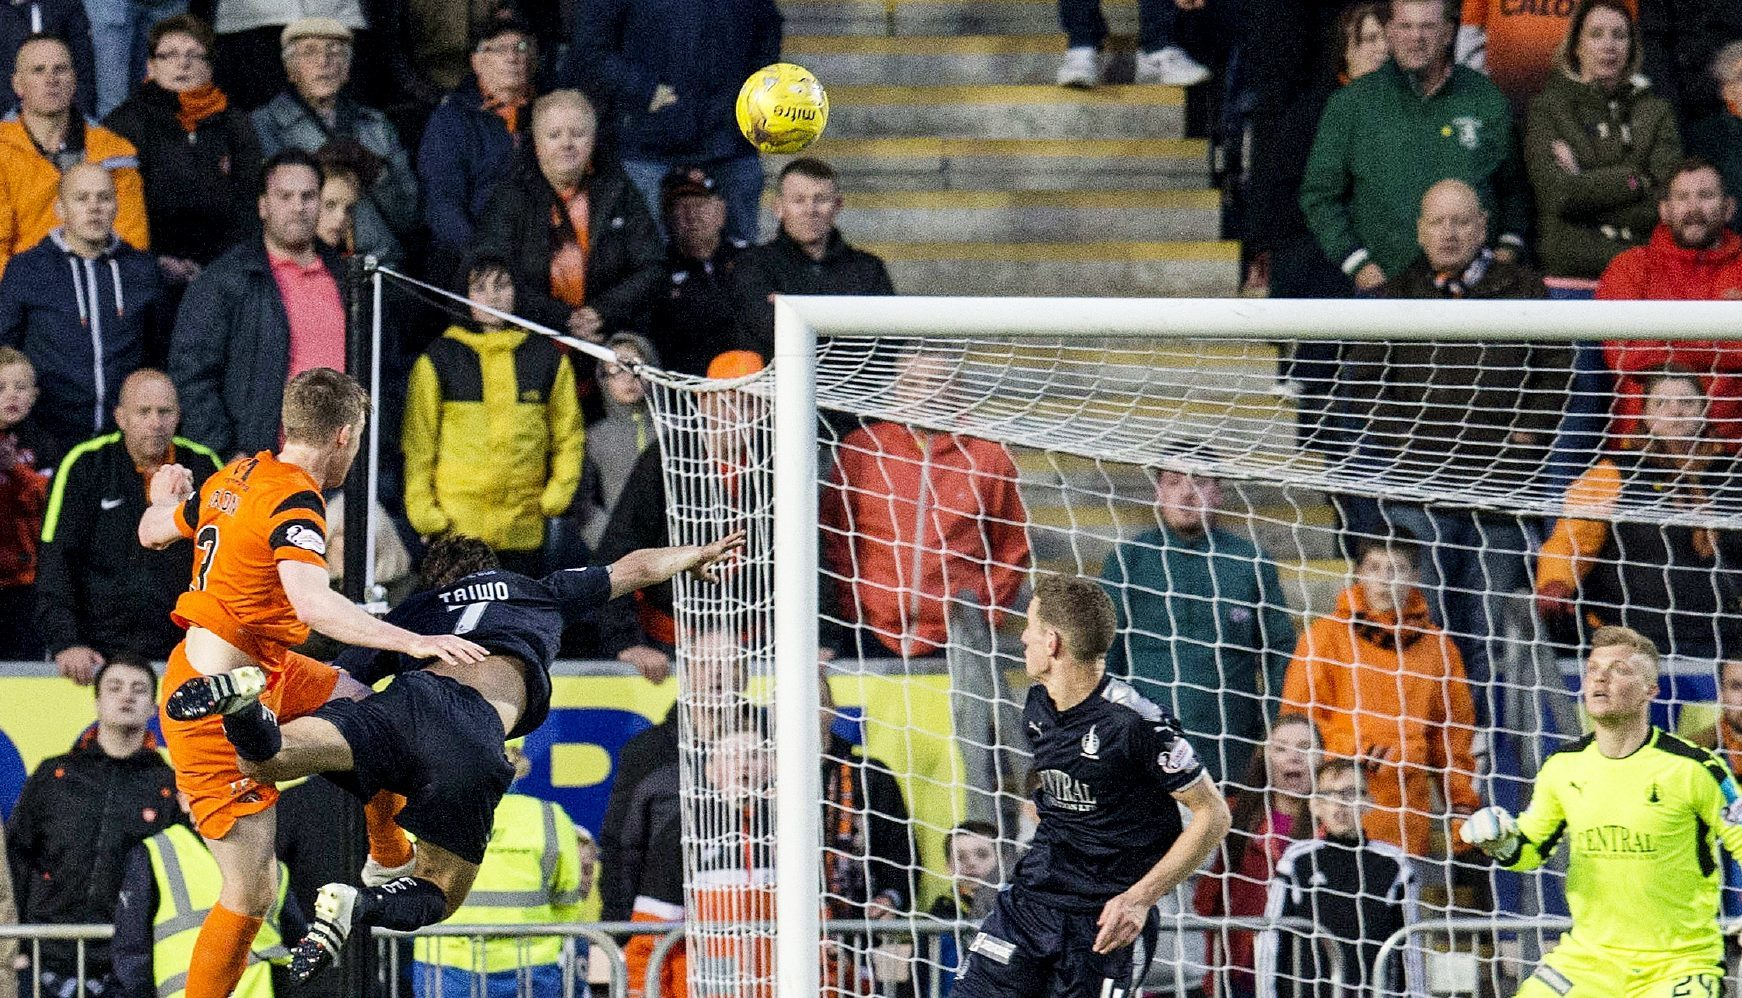 Paul Dixon scores against Falkirk.